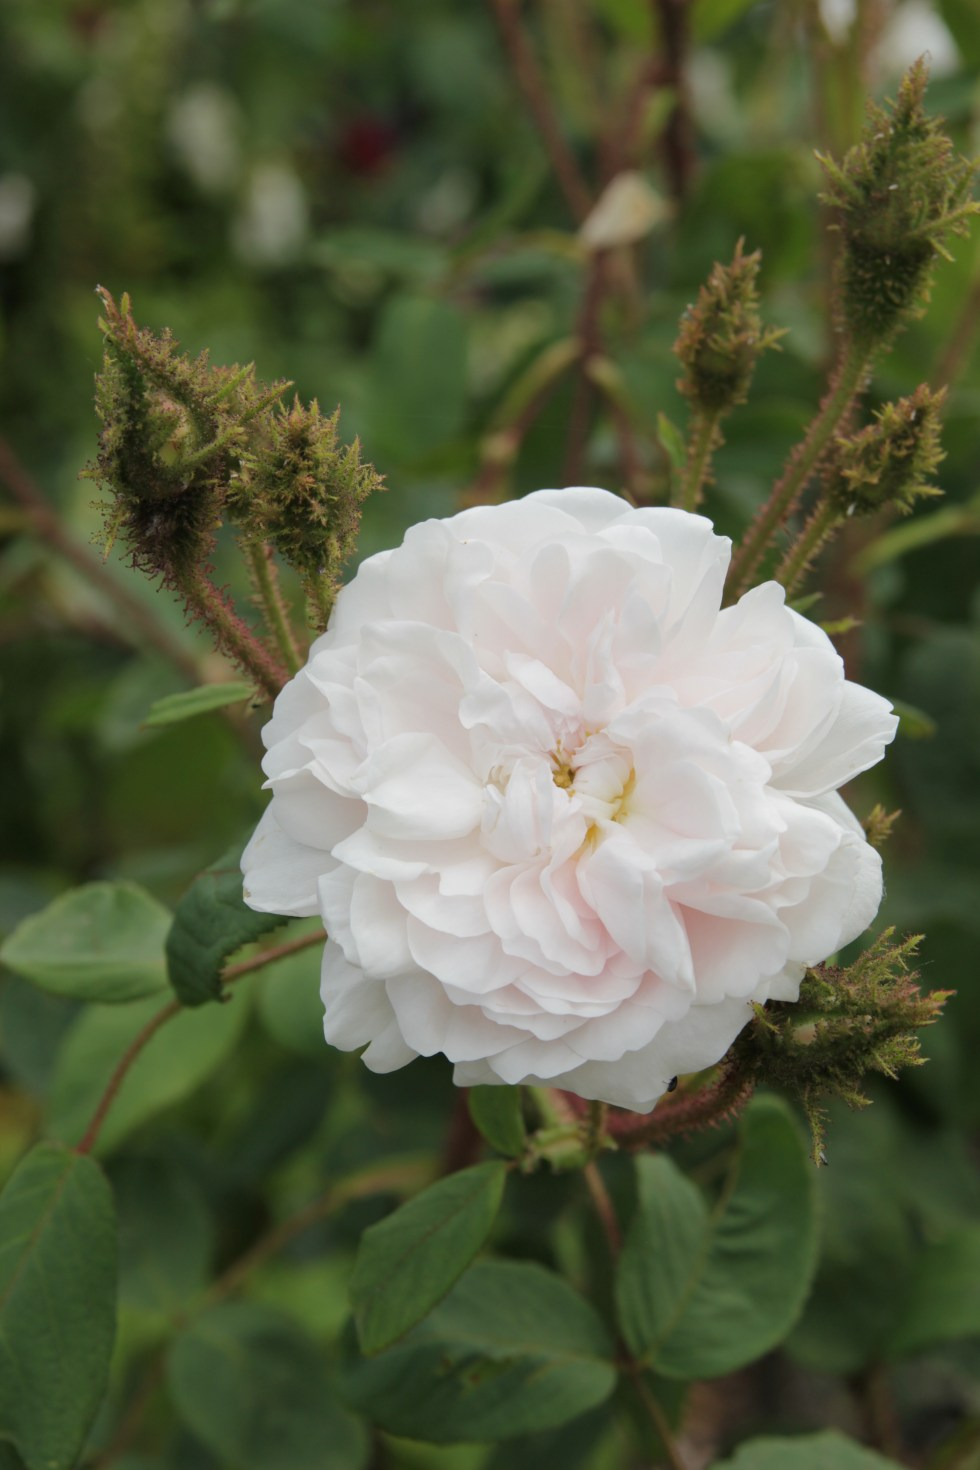 rosa shailers white muscosa alba1 The glory of the moss roses